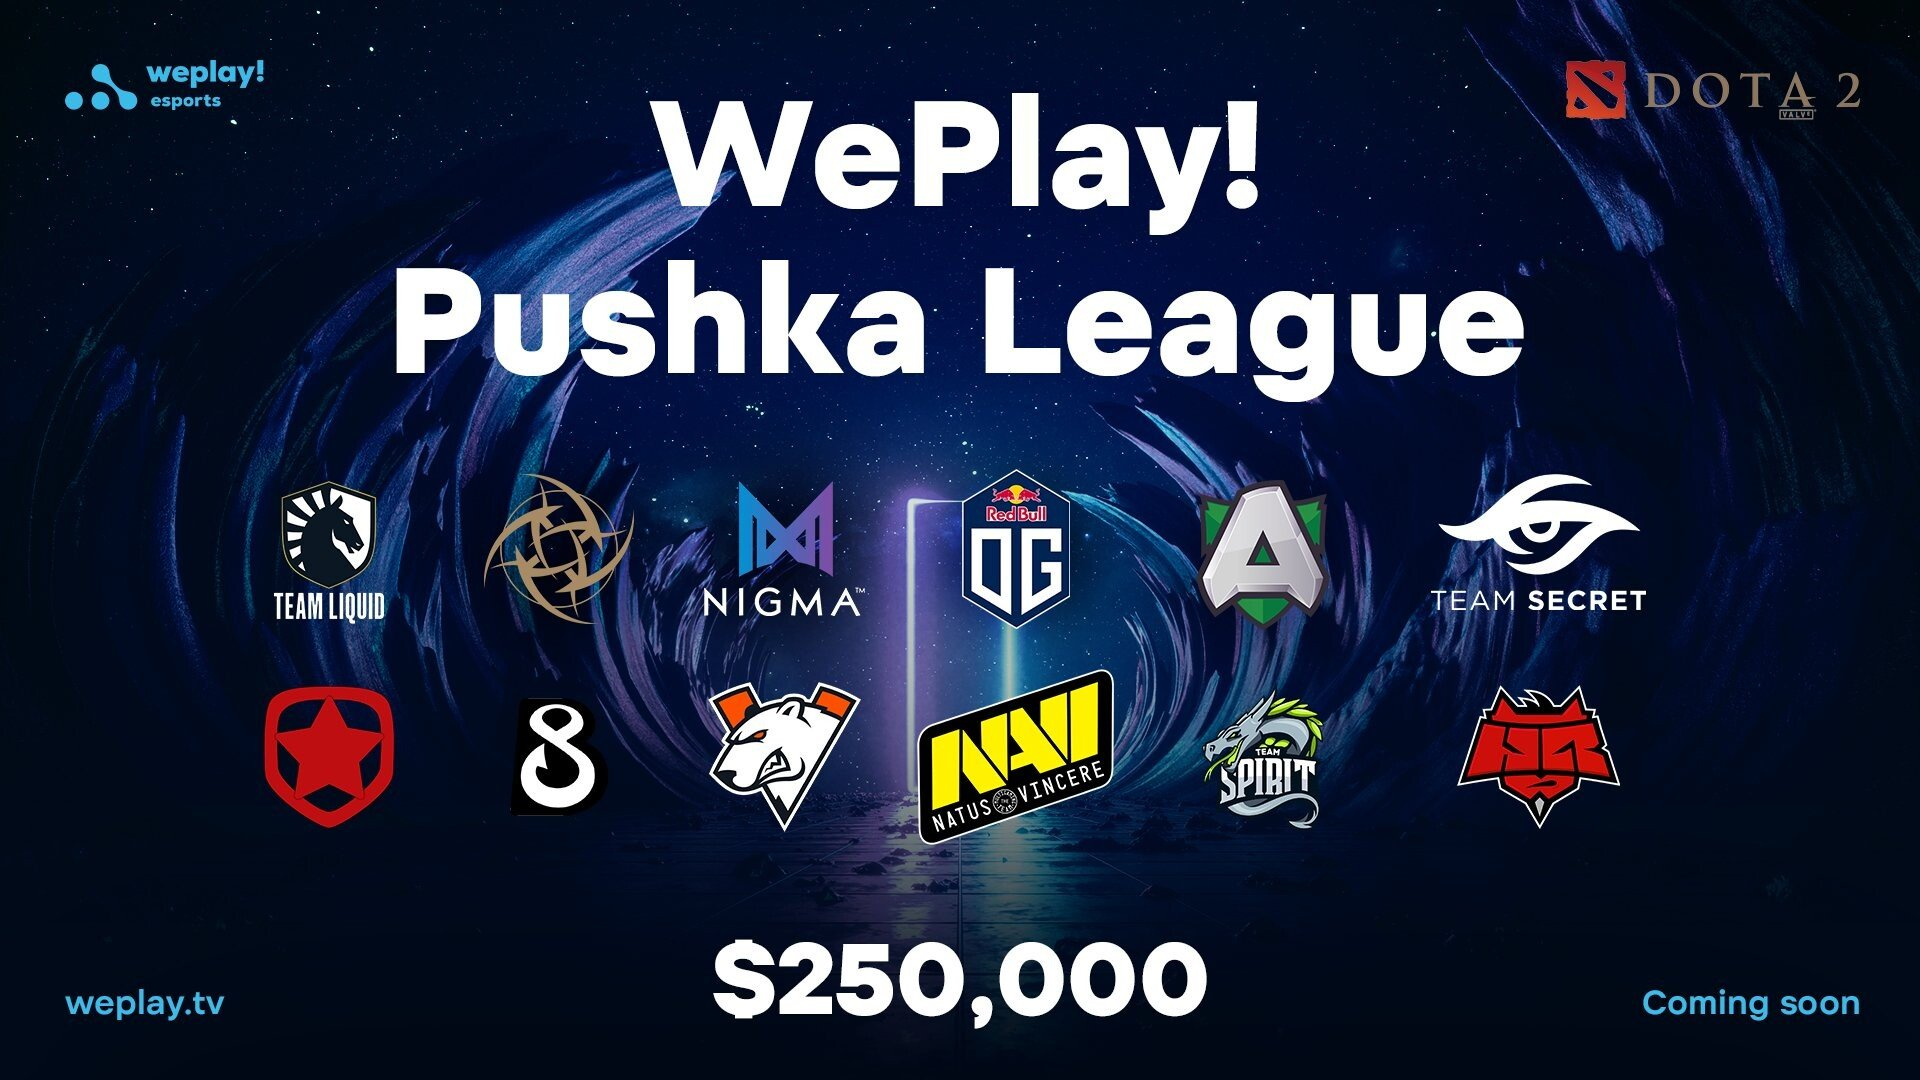 we play! pushka league